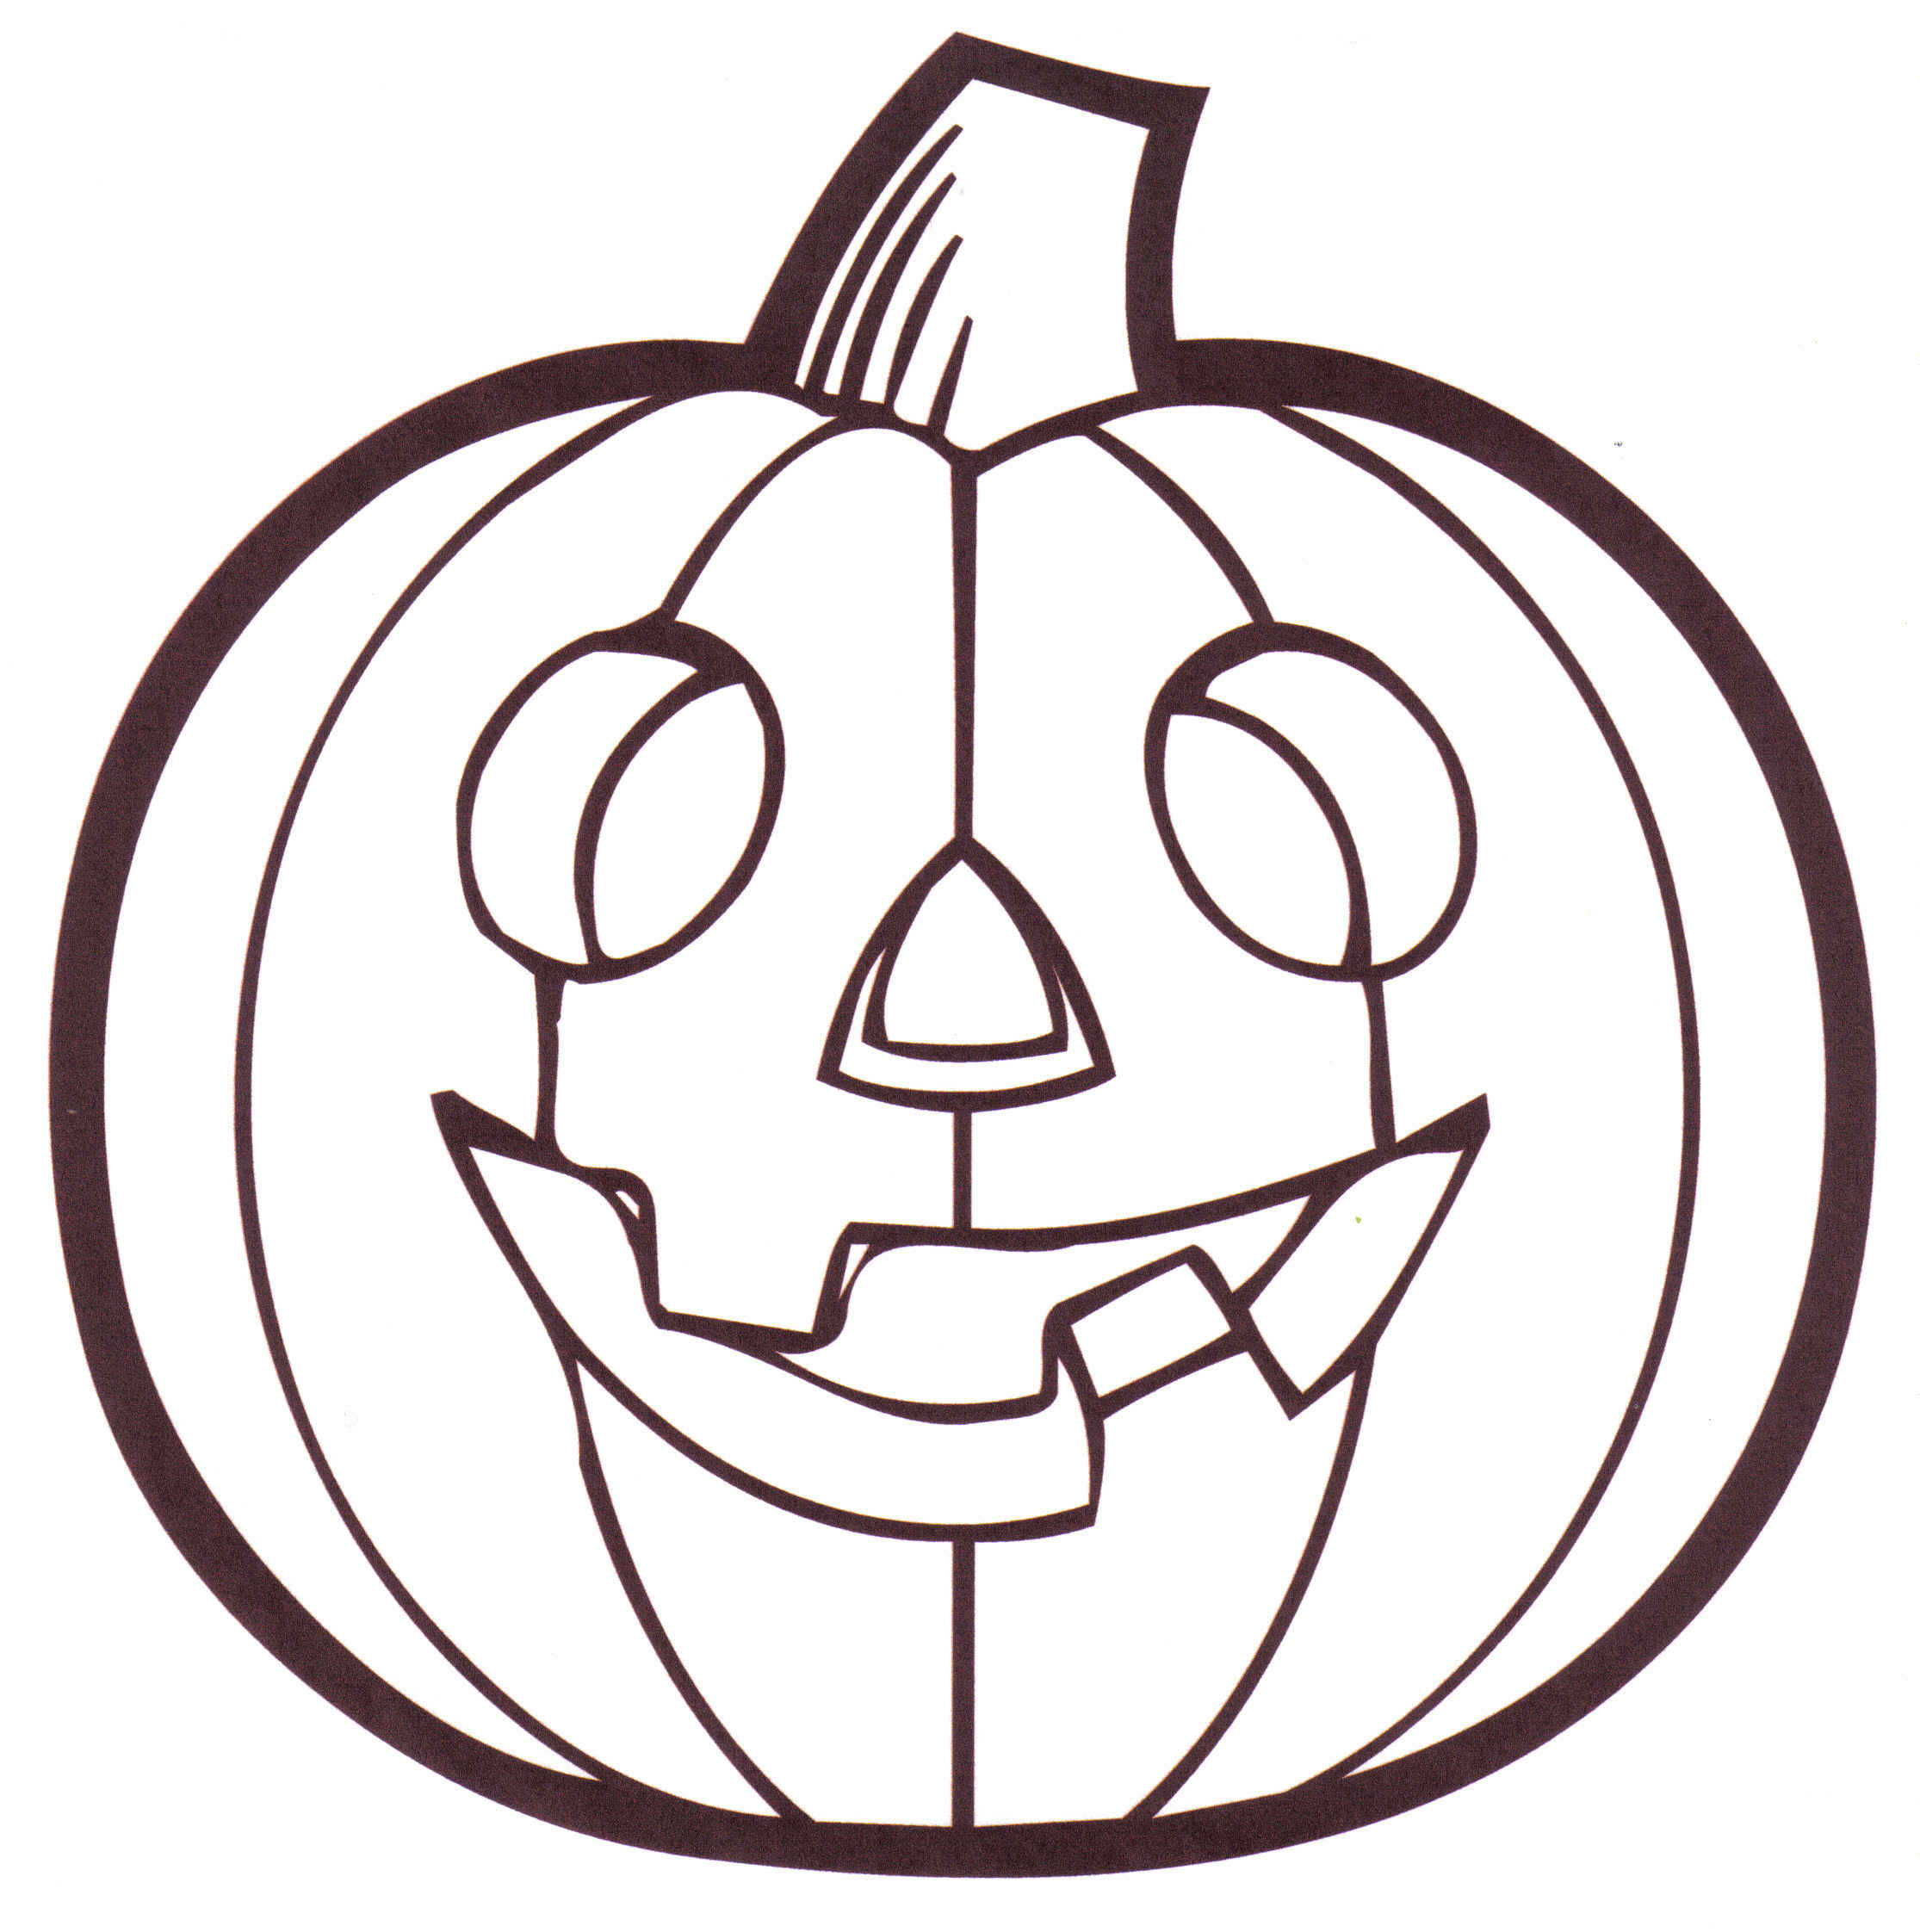 Coloring Page Of Pumpkin Pumpkin Faces Coloring Pages Clipart Panda Free Clipart Images